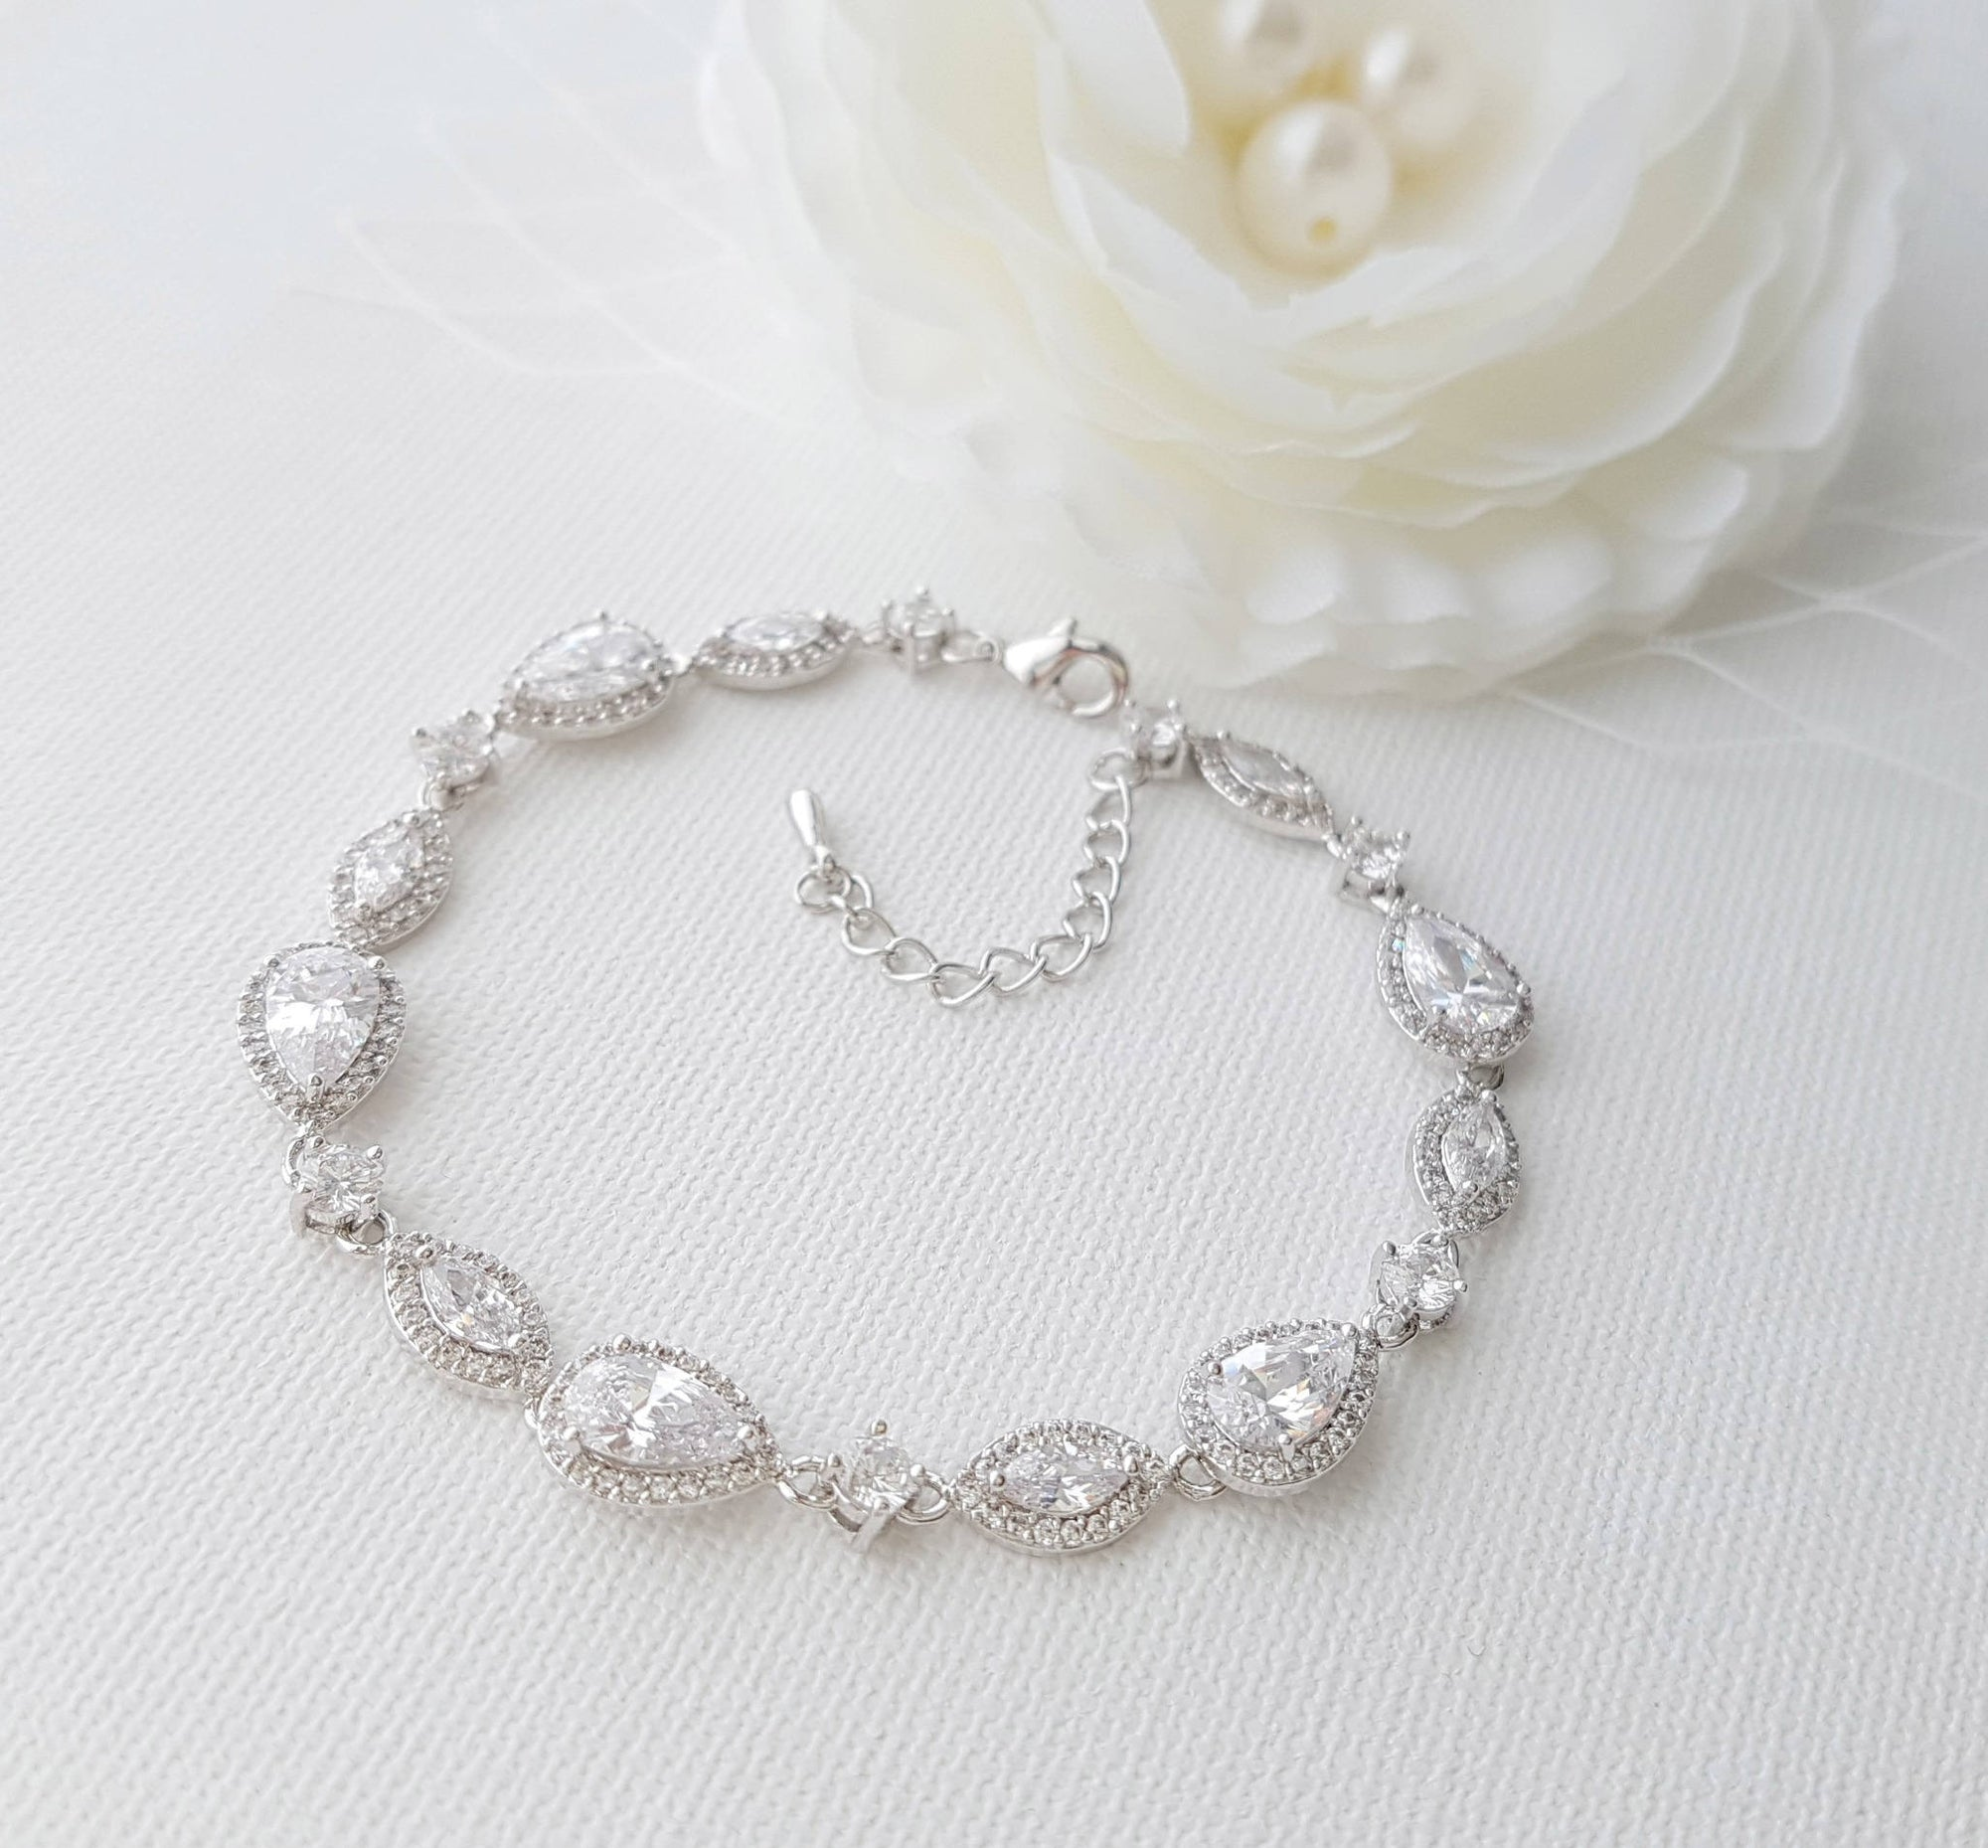 Wedding Bracelet Crystal Bridal Bracelet Wedding Jewelry Simple